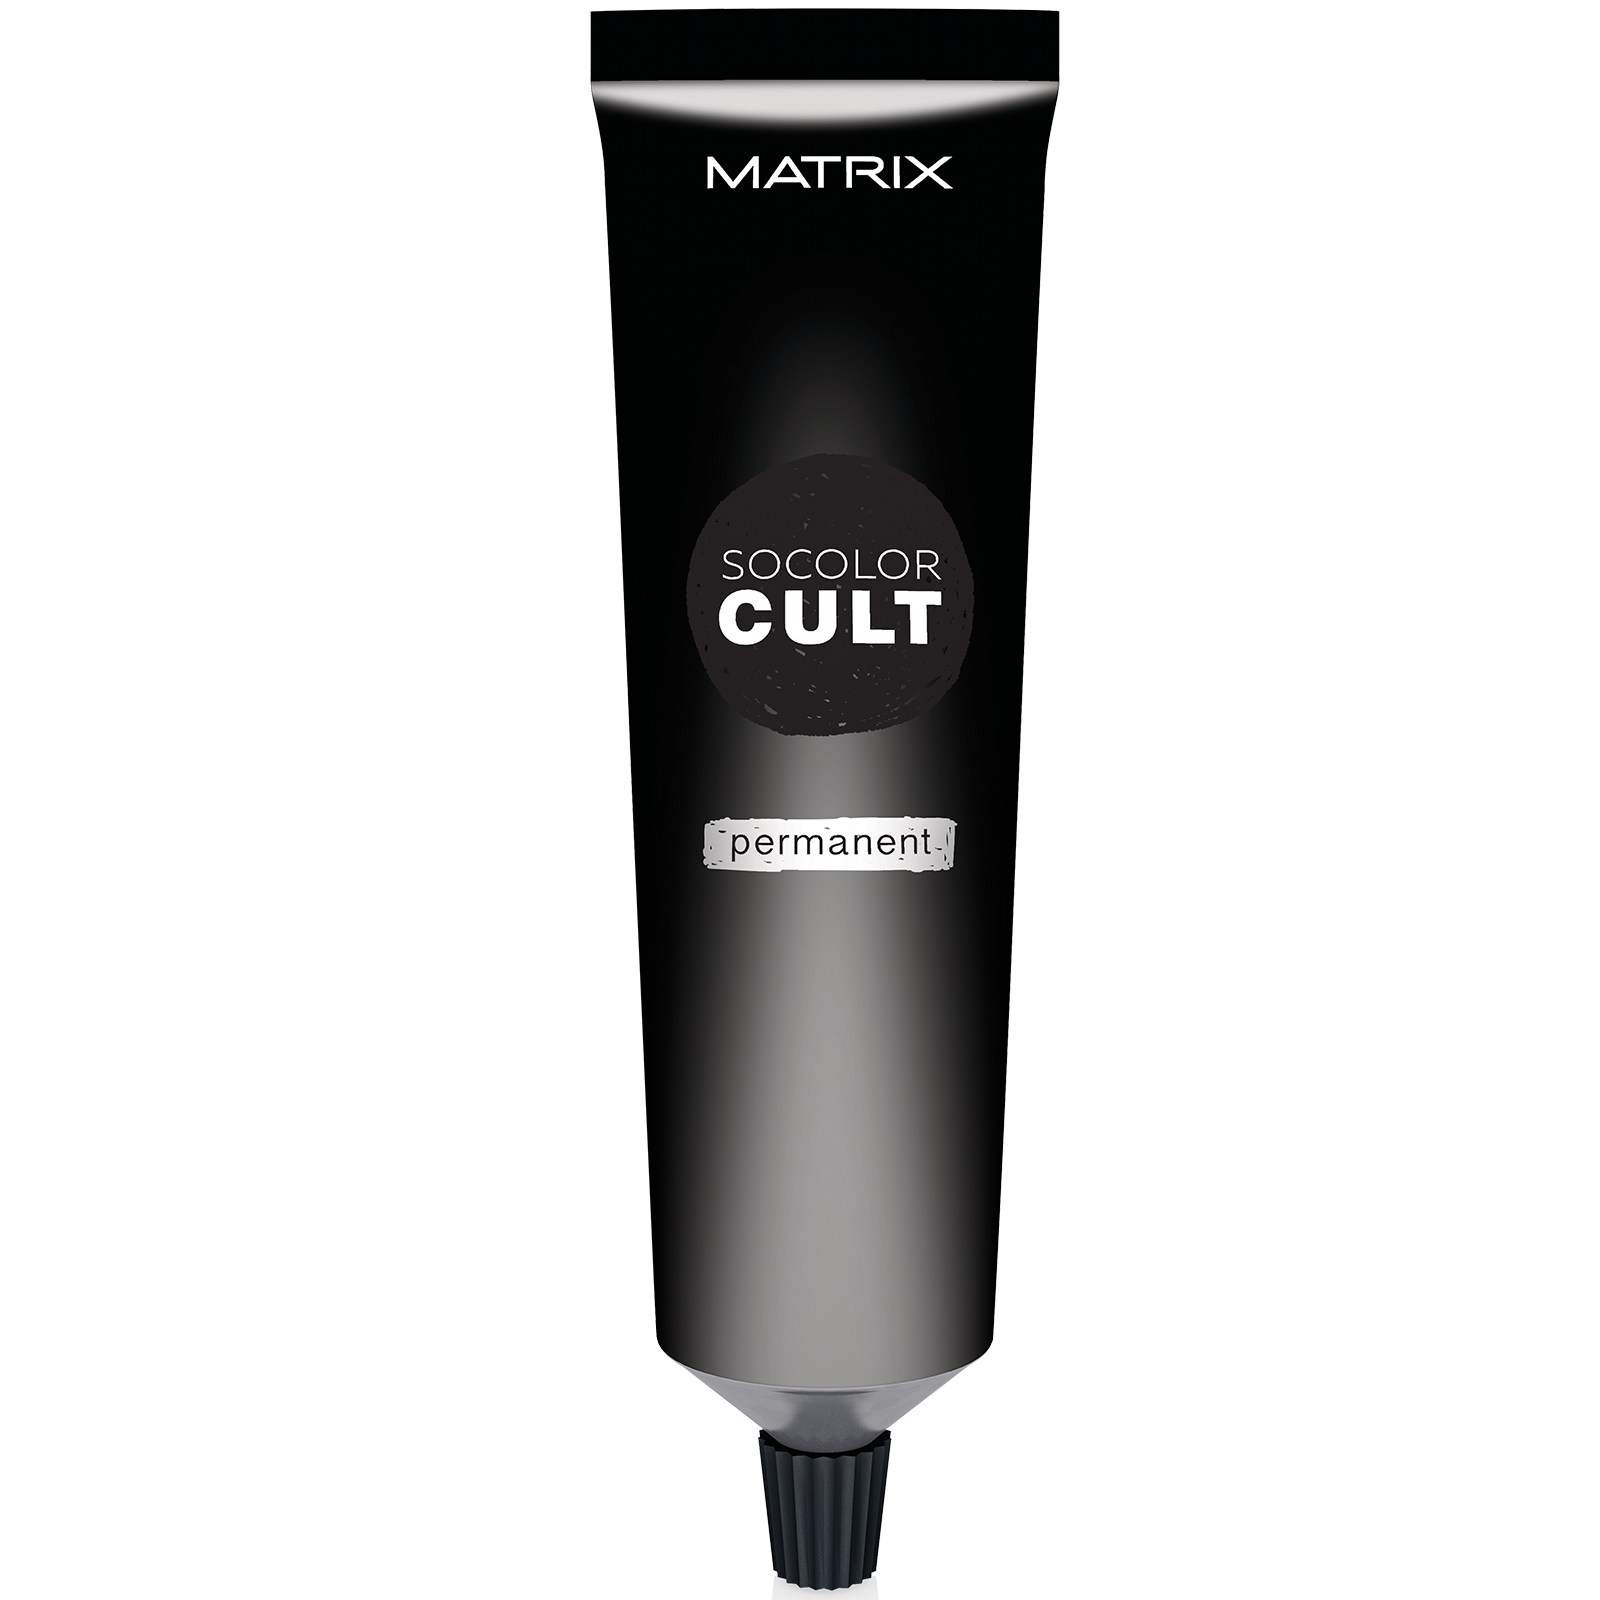 SoColor Cult Permanent Shades